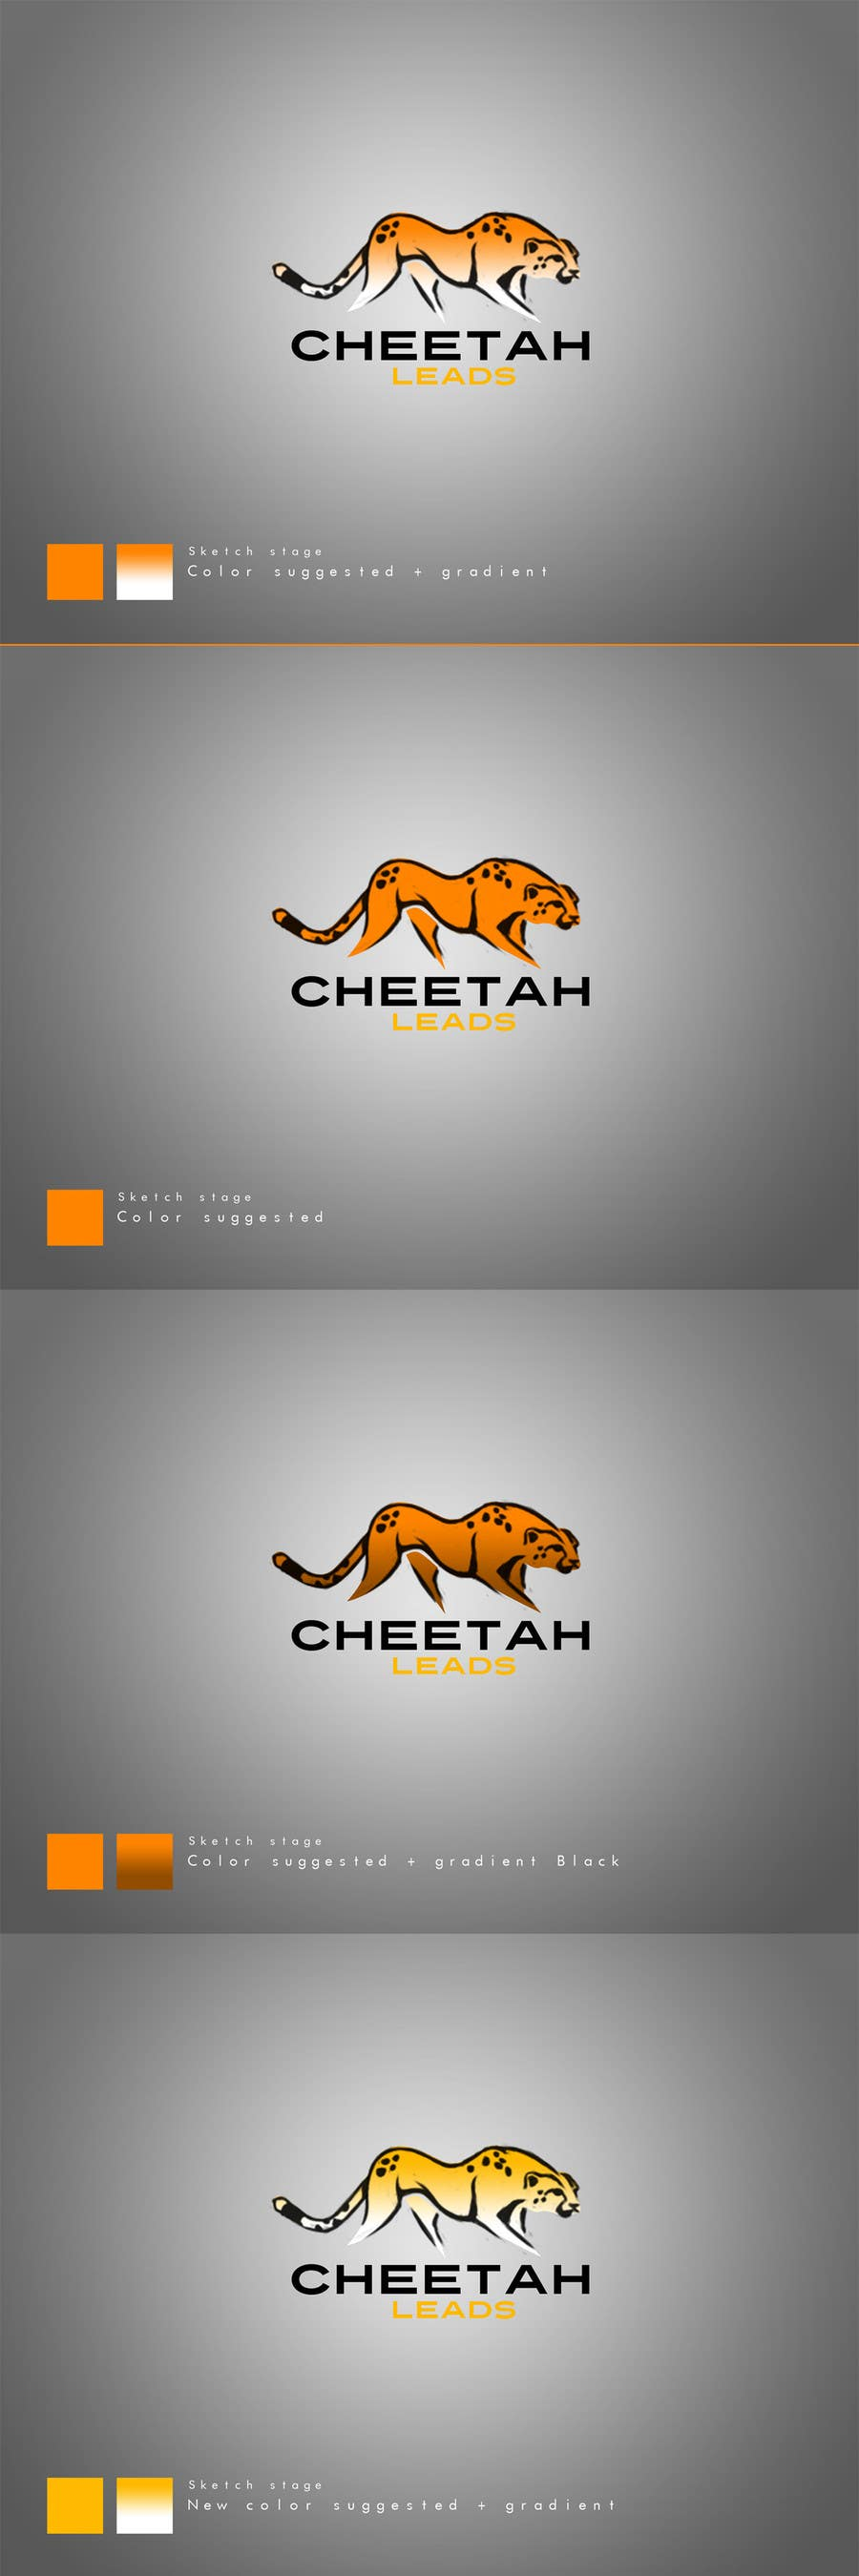 Contest Entry #78 for Design a Logo for CheetahLeads.com